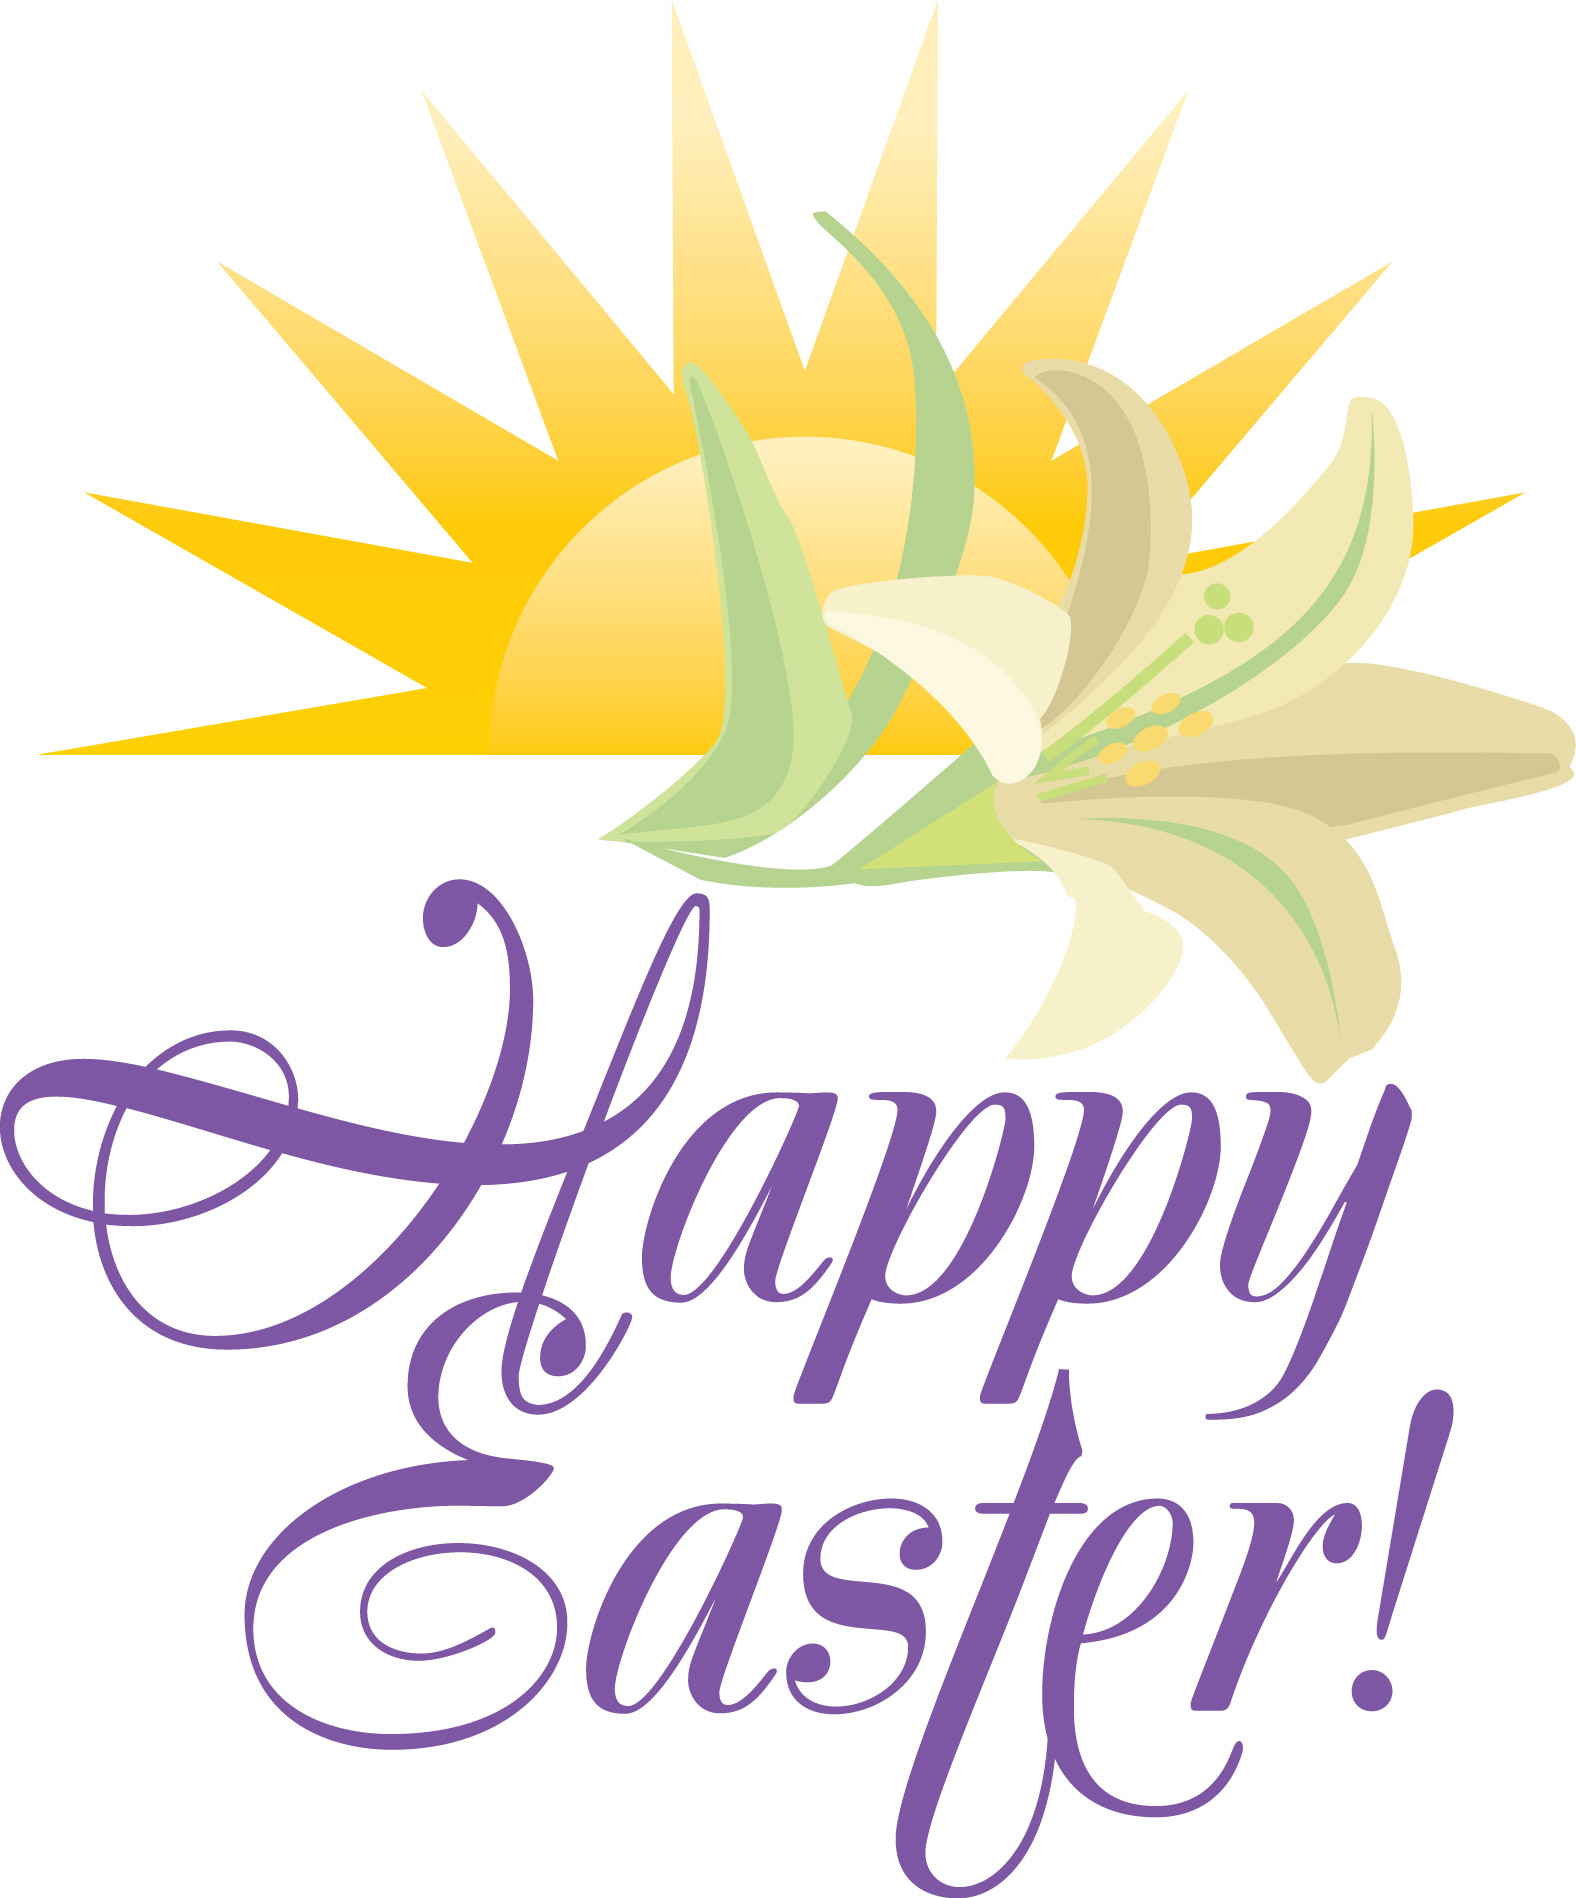 Happy easter clipart free download image download Easter Sunday Clipart & Look At Clip Art Images - ClipartLook image download